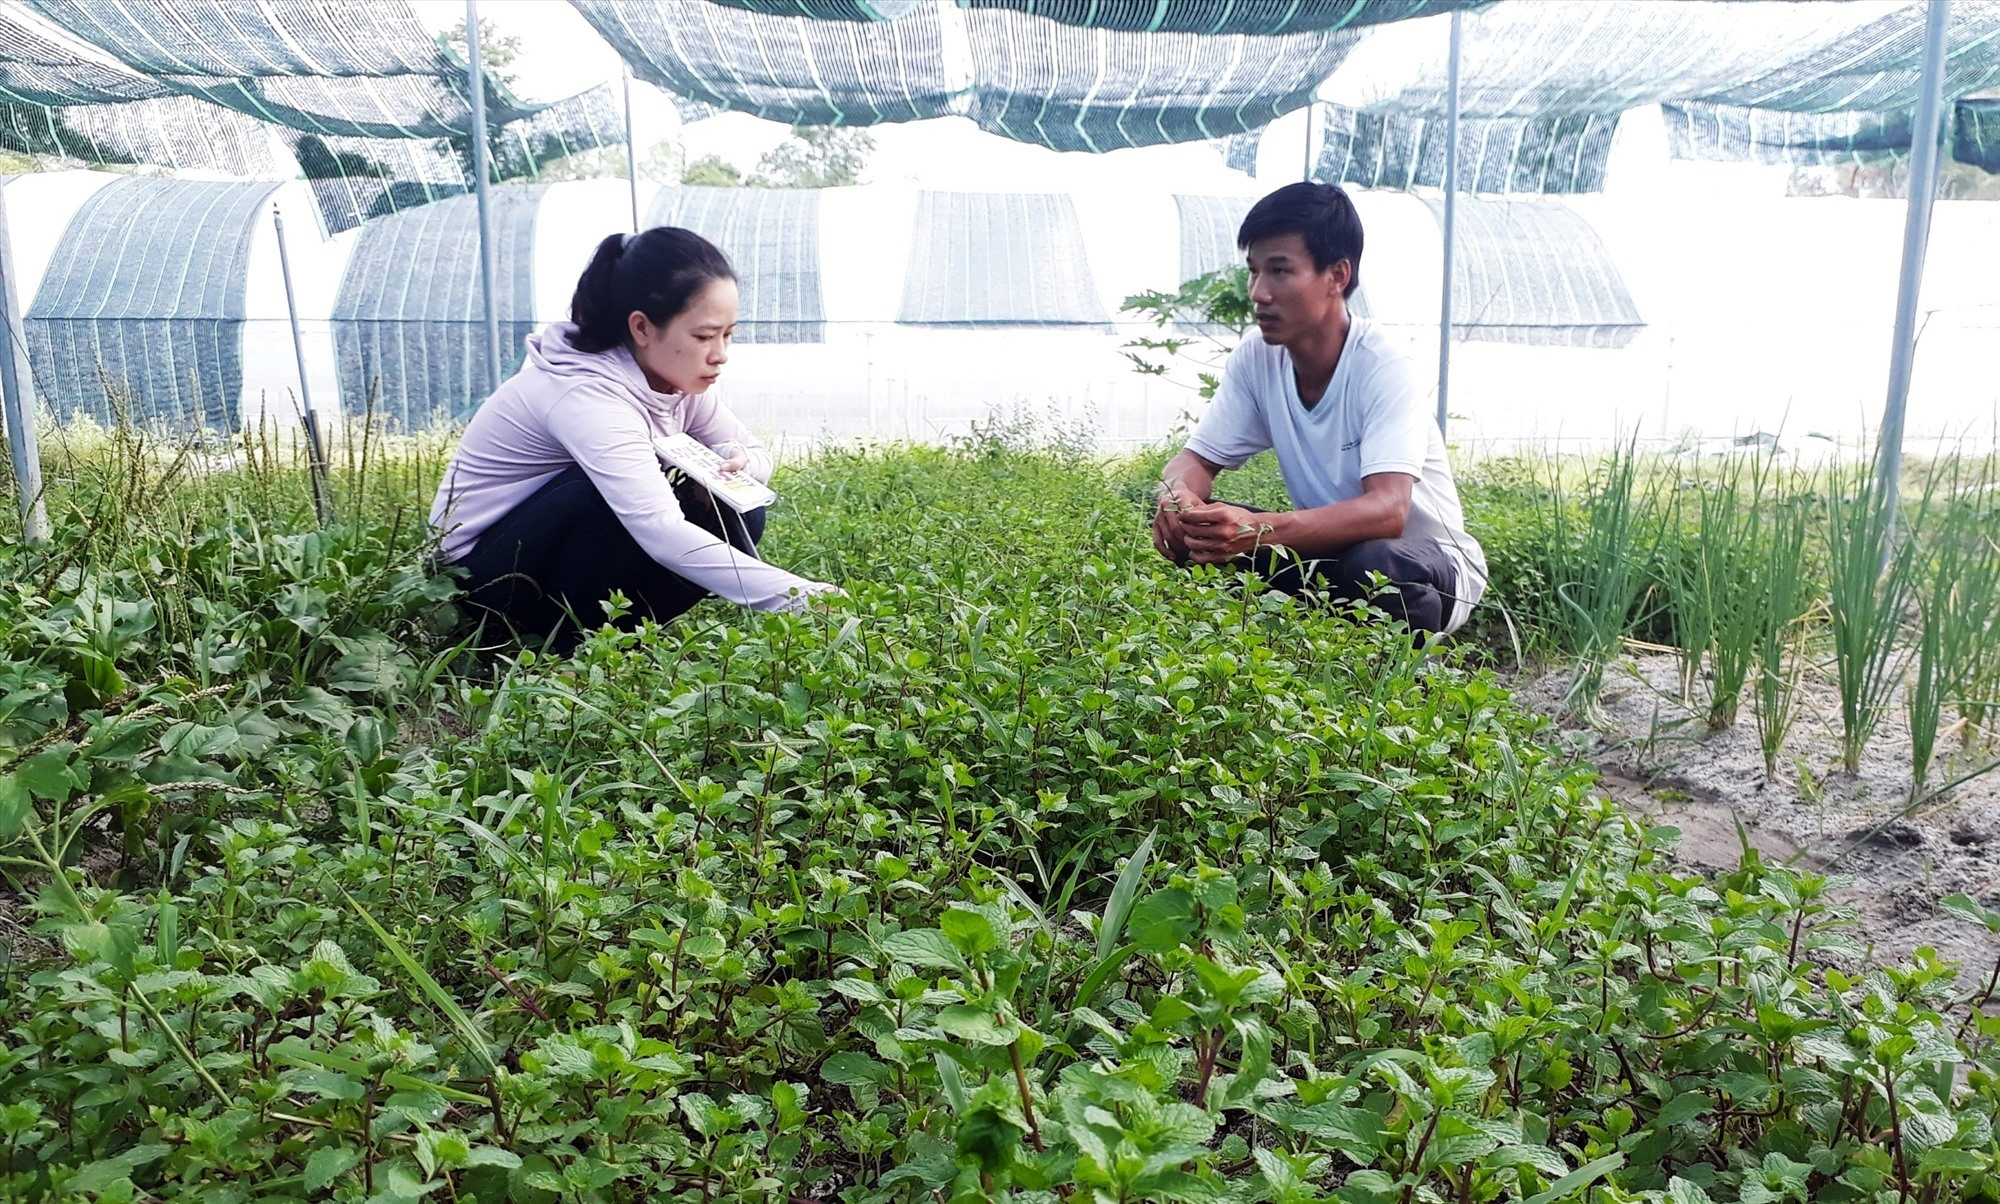 Truong Thanh hi-tech agricultural cooperative